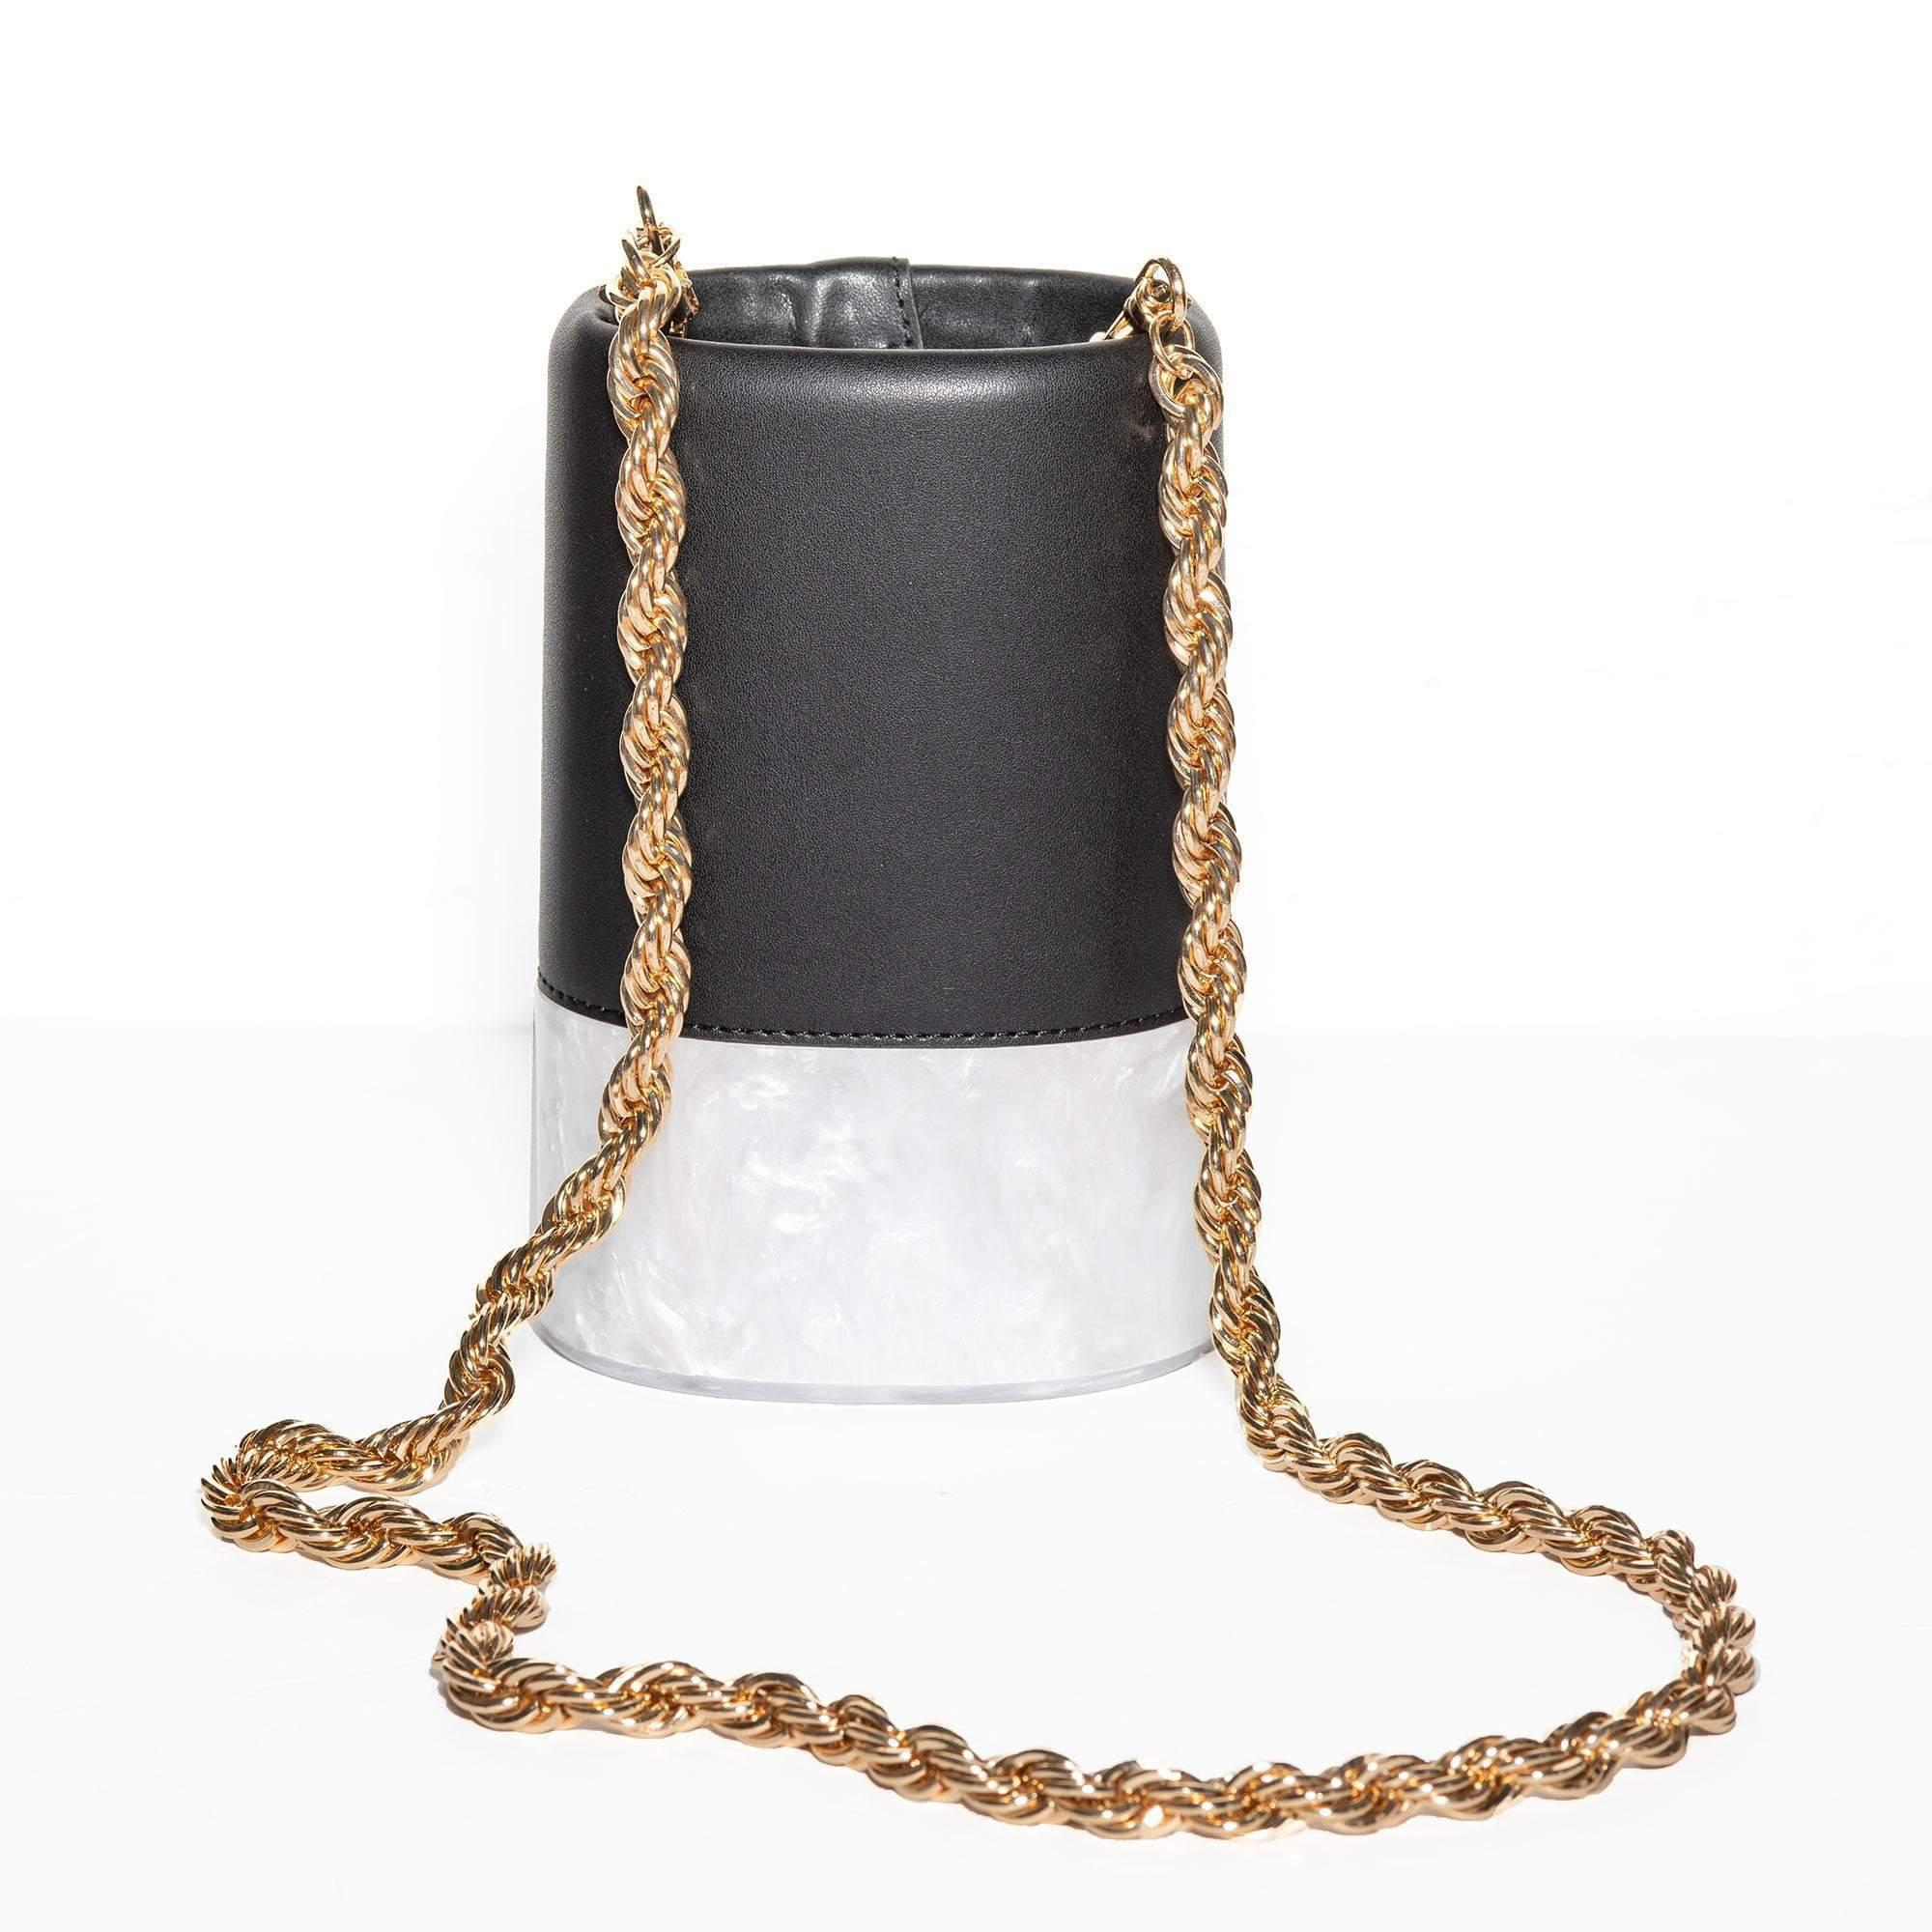 BLACK AND WHITE PETITE DALLAS BAG WITH CROSSBODY GOLD CHAIN